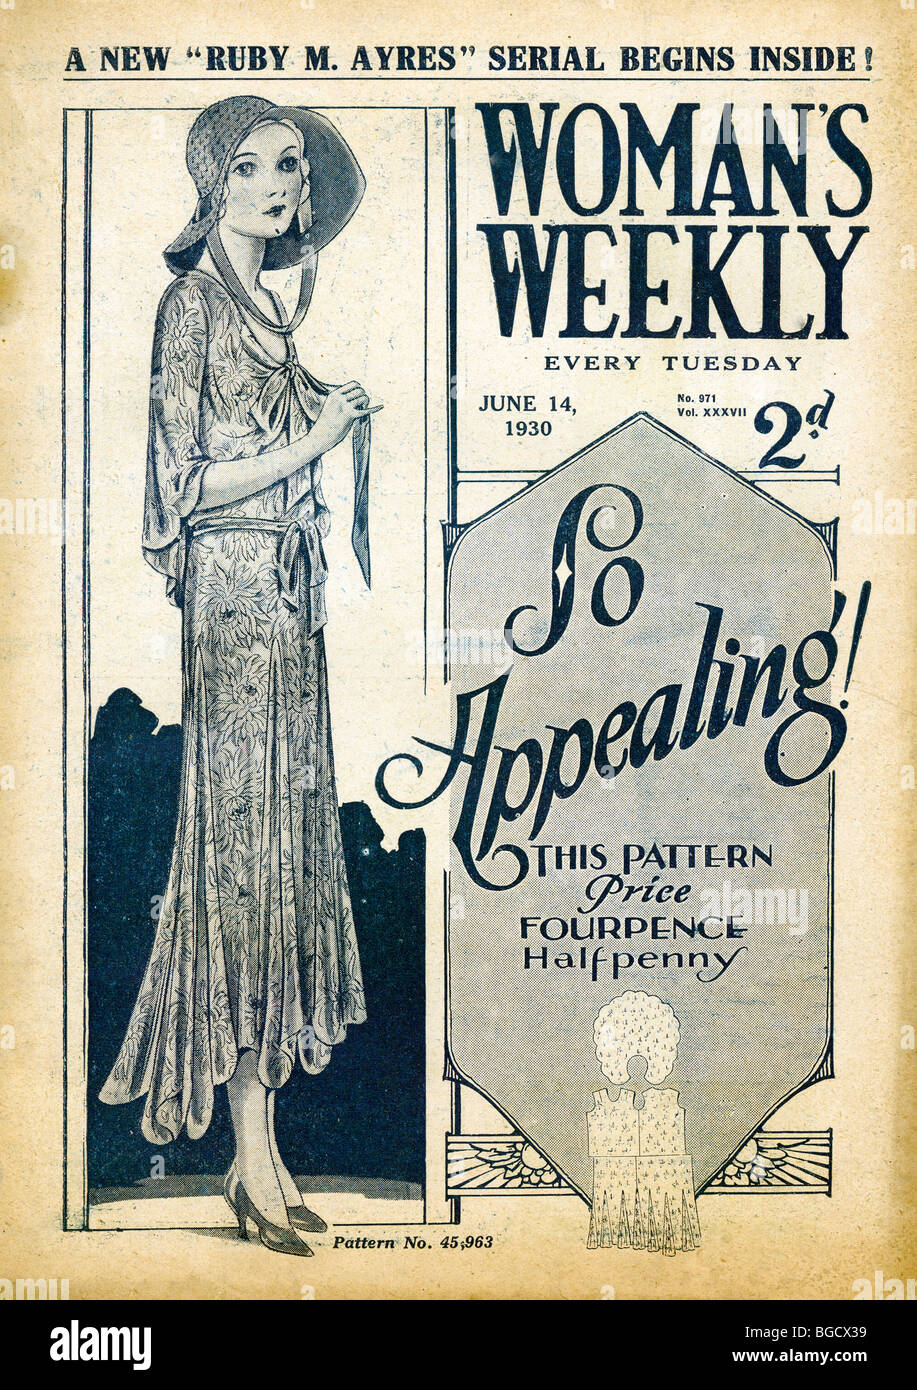 Womens Weekly, 14 June, 1930 cover of the womens lifestyle and fashion magazine featuring dress paterns - Stock Image